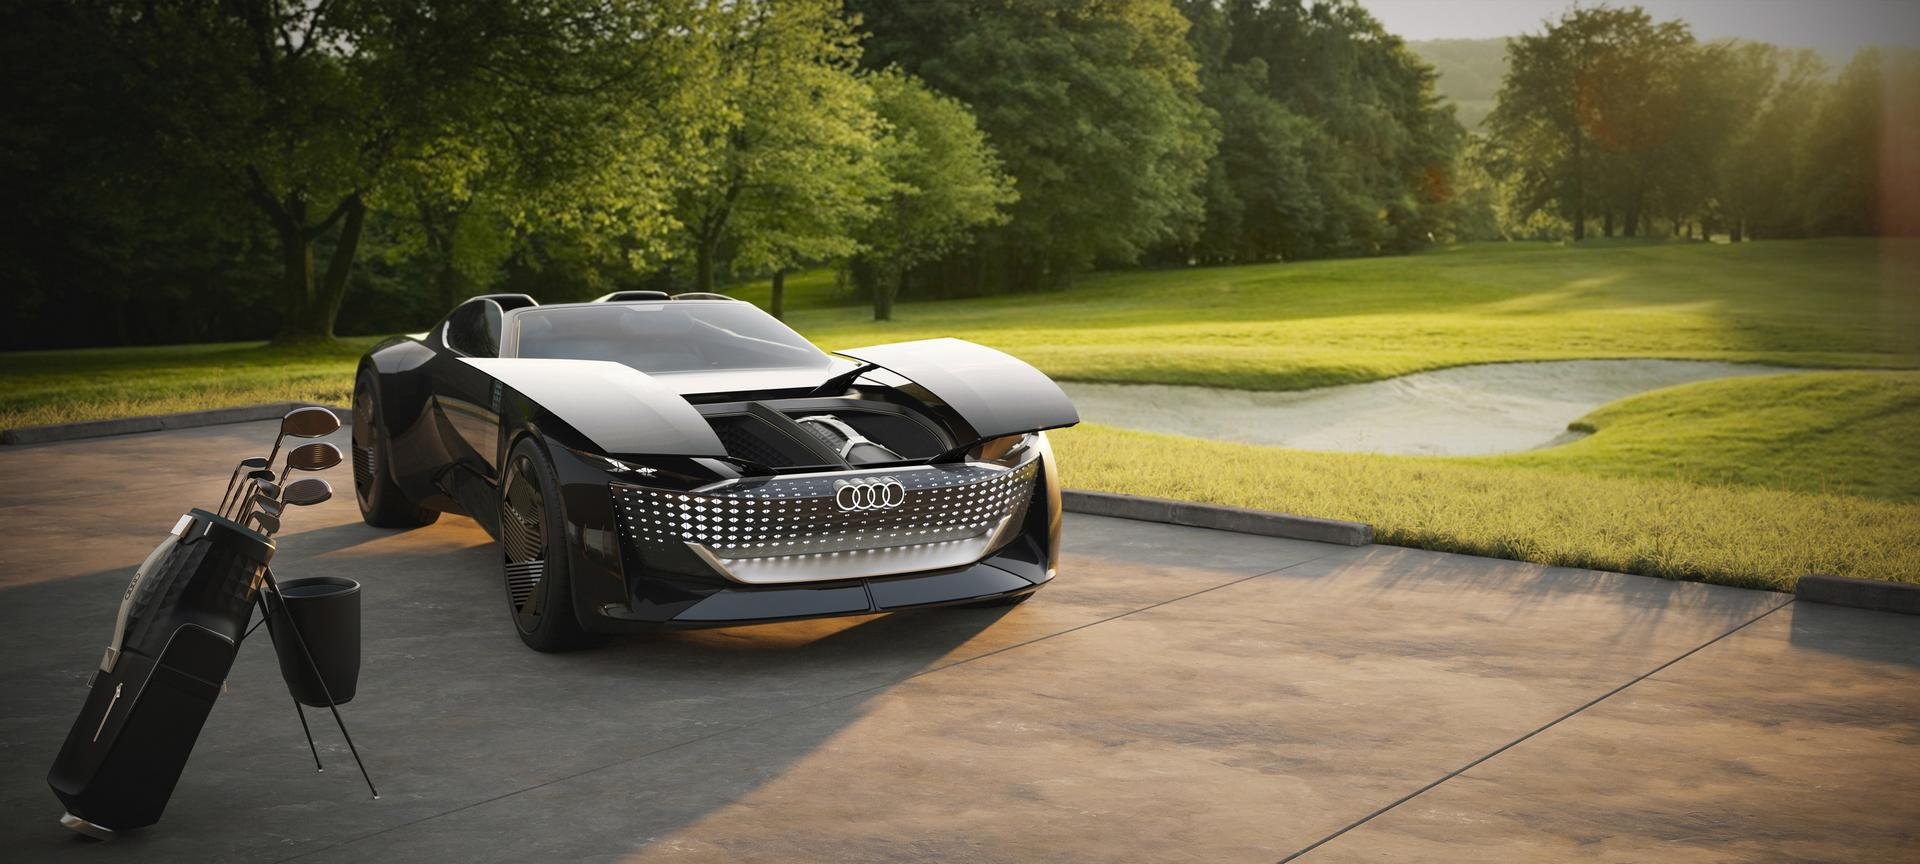 Audi Skysphere Concept: A Roadster and a Grand Tourer in One